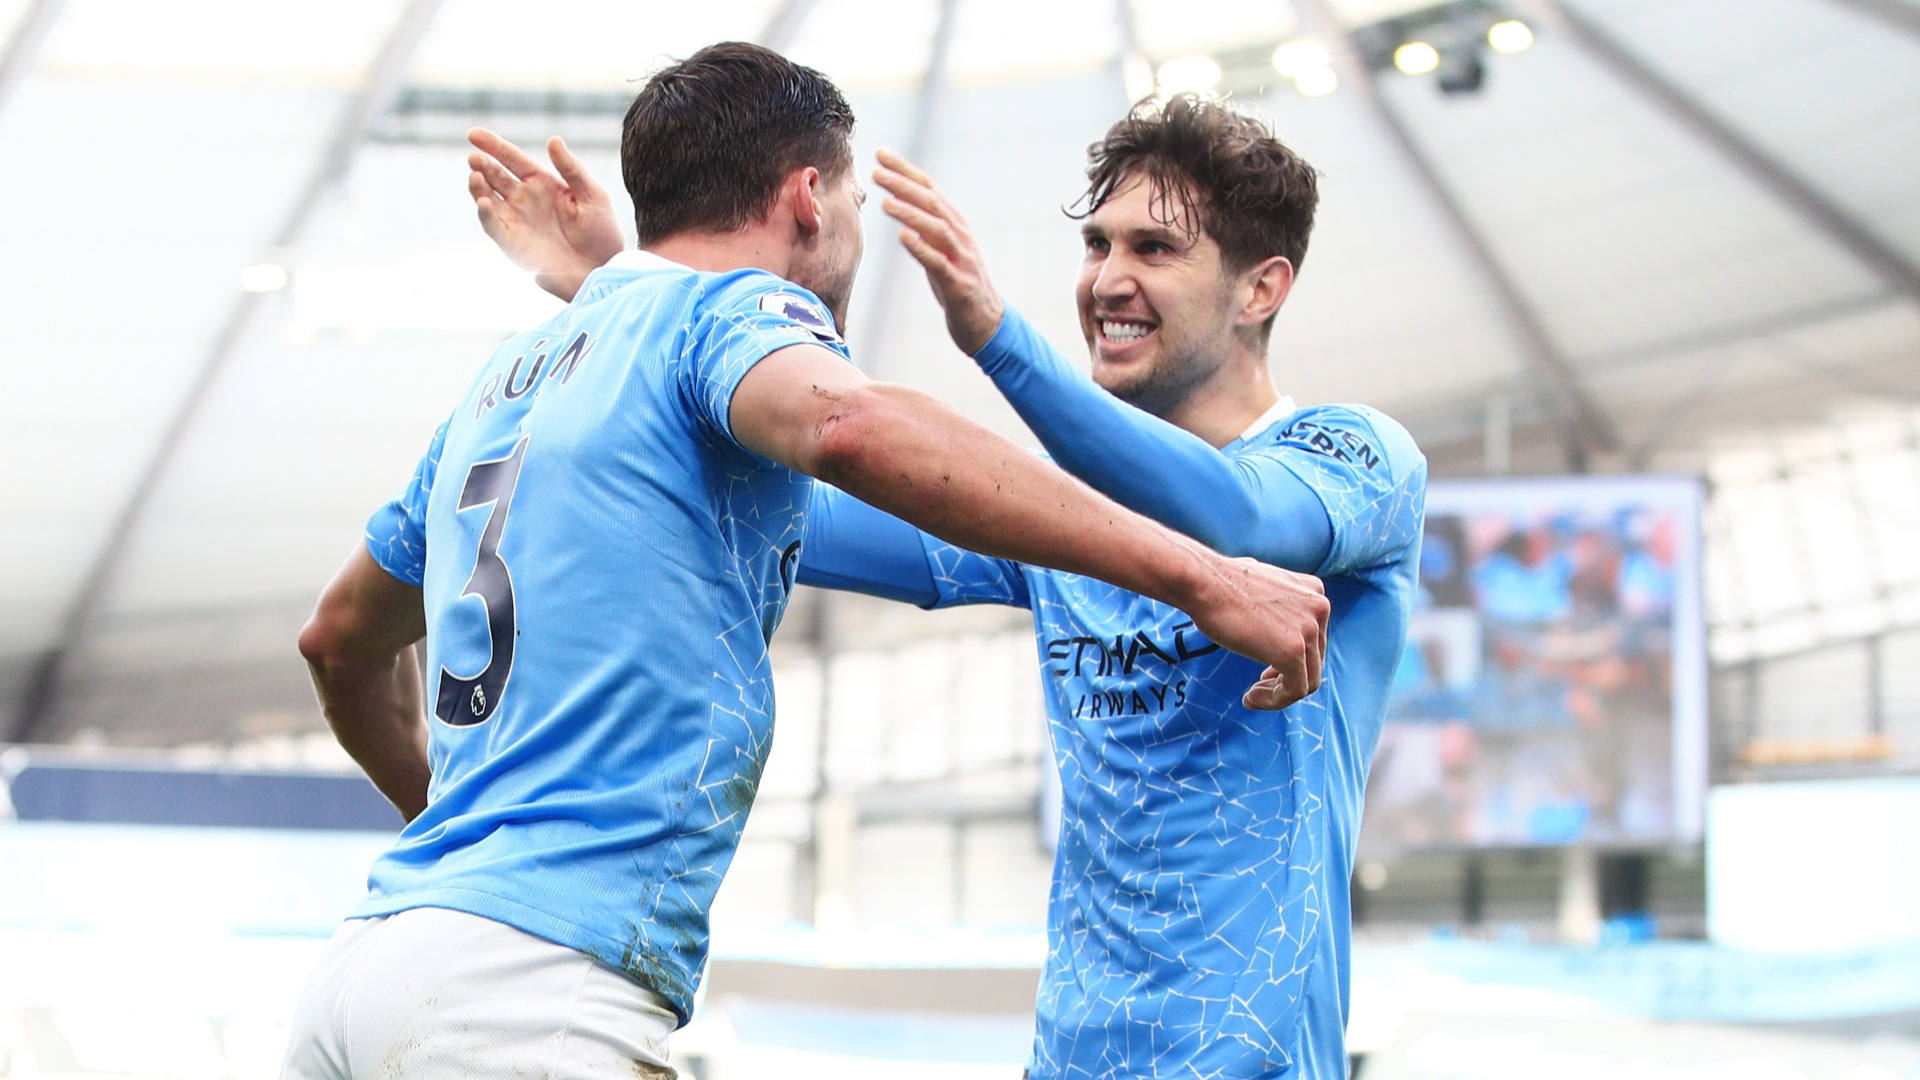 Manchester City 2-1 West Ham: Stones and Dias put leaders 13 points clear